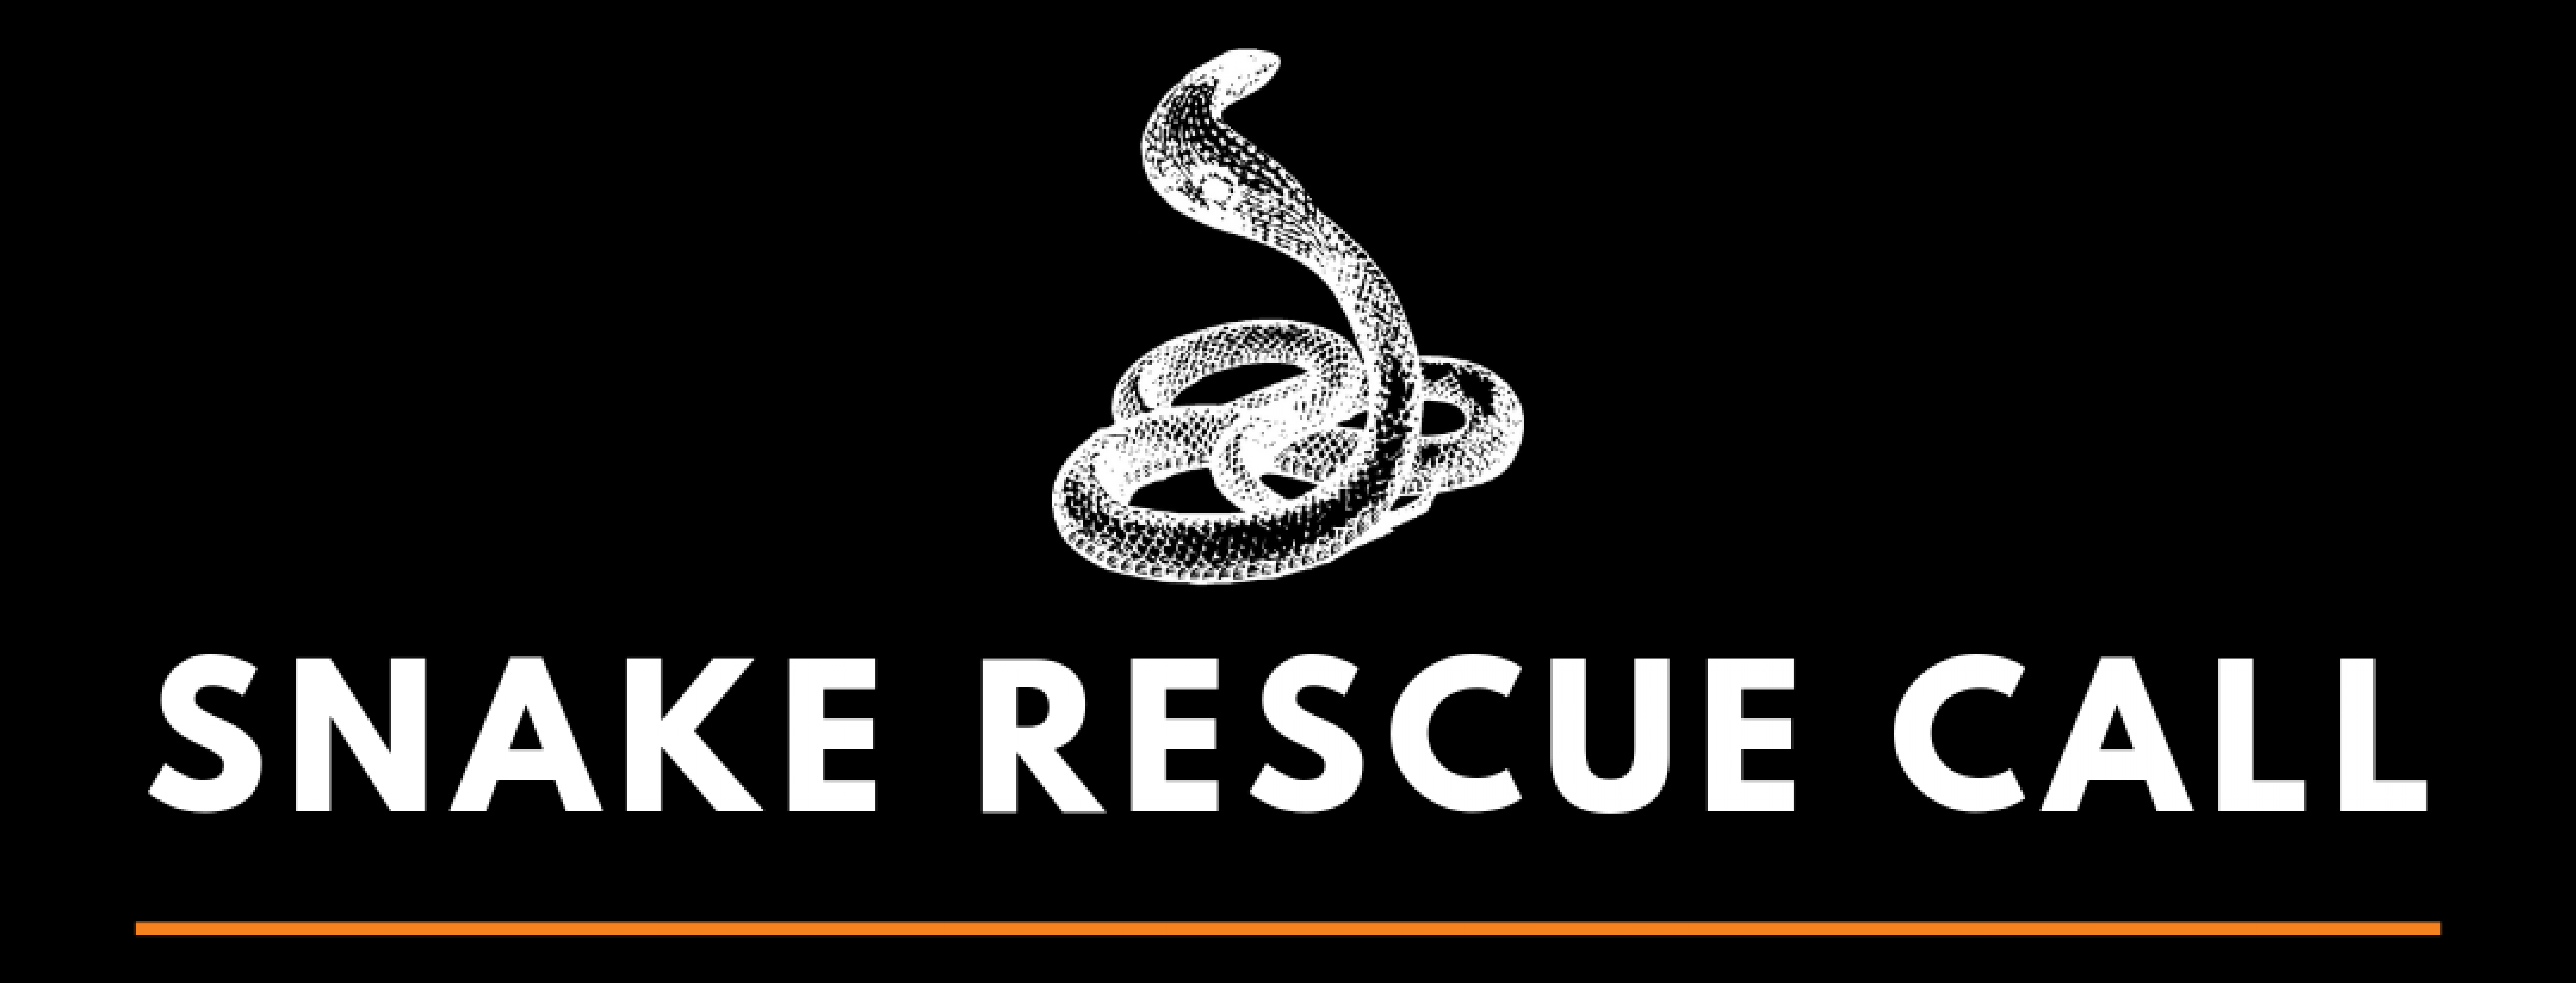 Snake Rescue Call